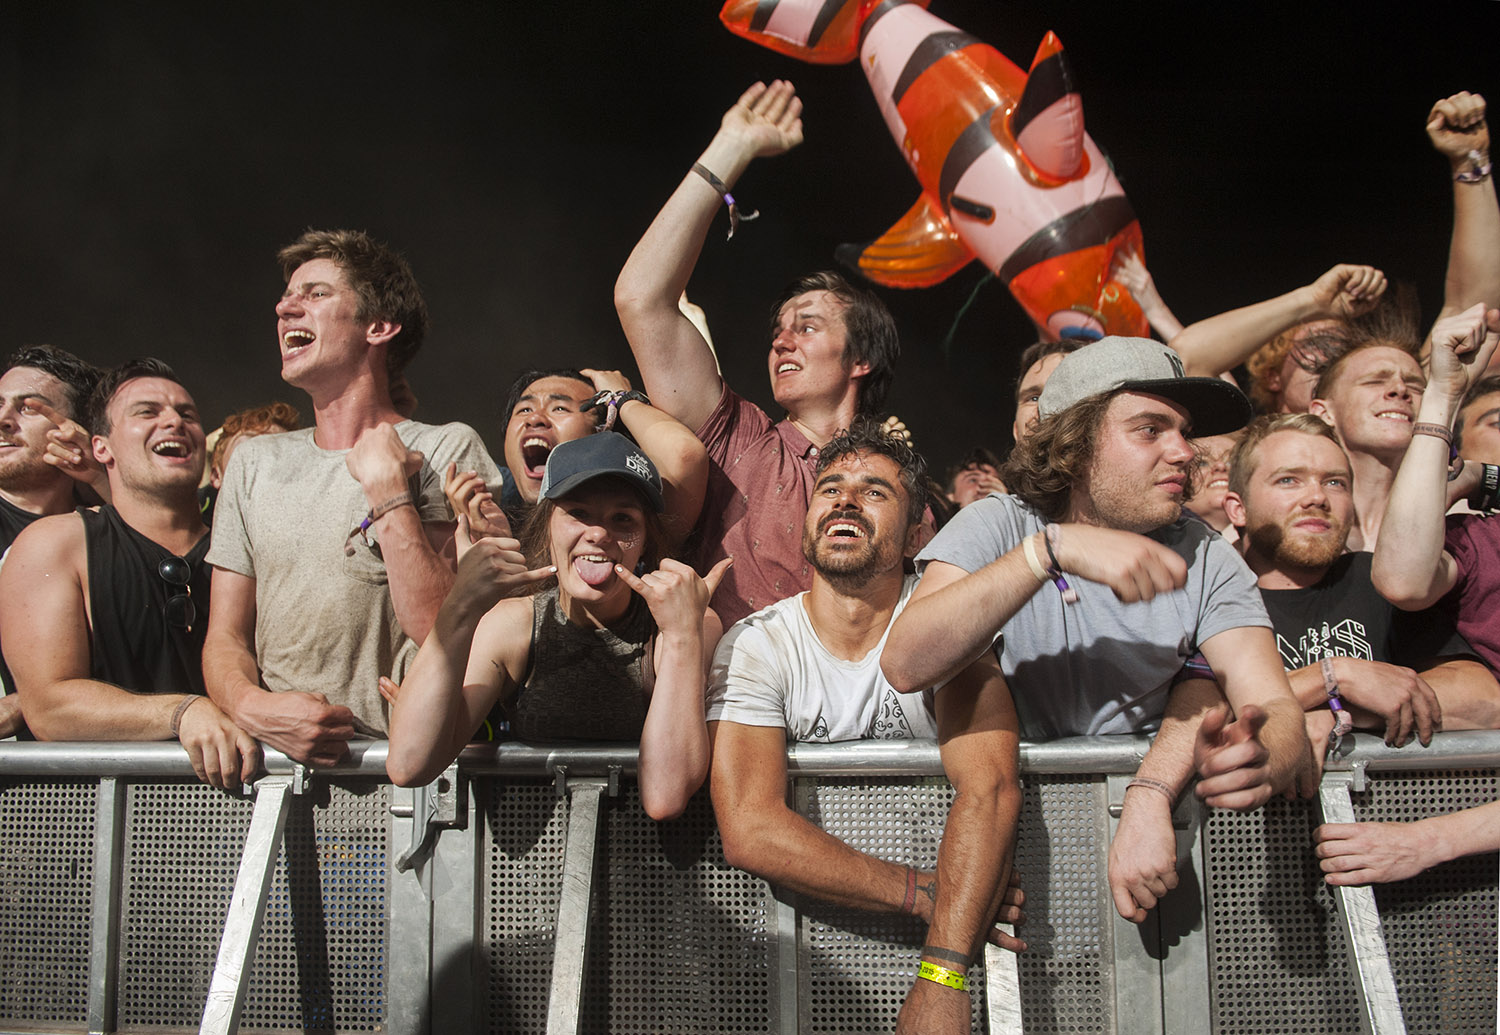 Waiting to celebrate the New Year, Falls Festival 2015 - image courtesy of Kirsty Umback.